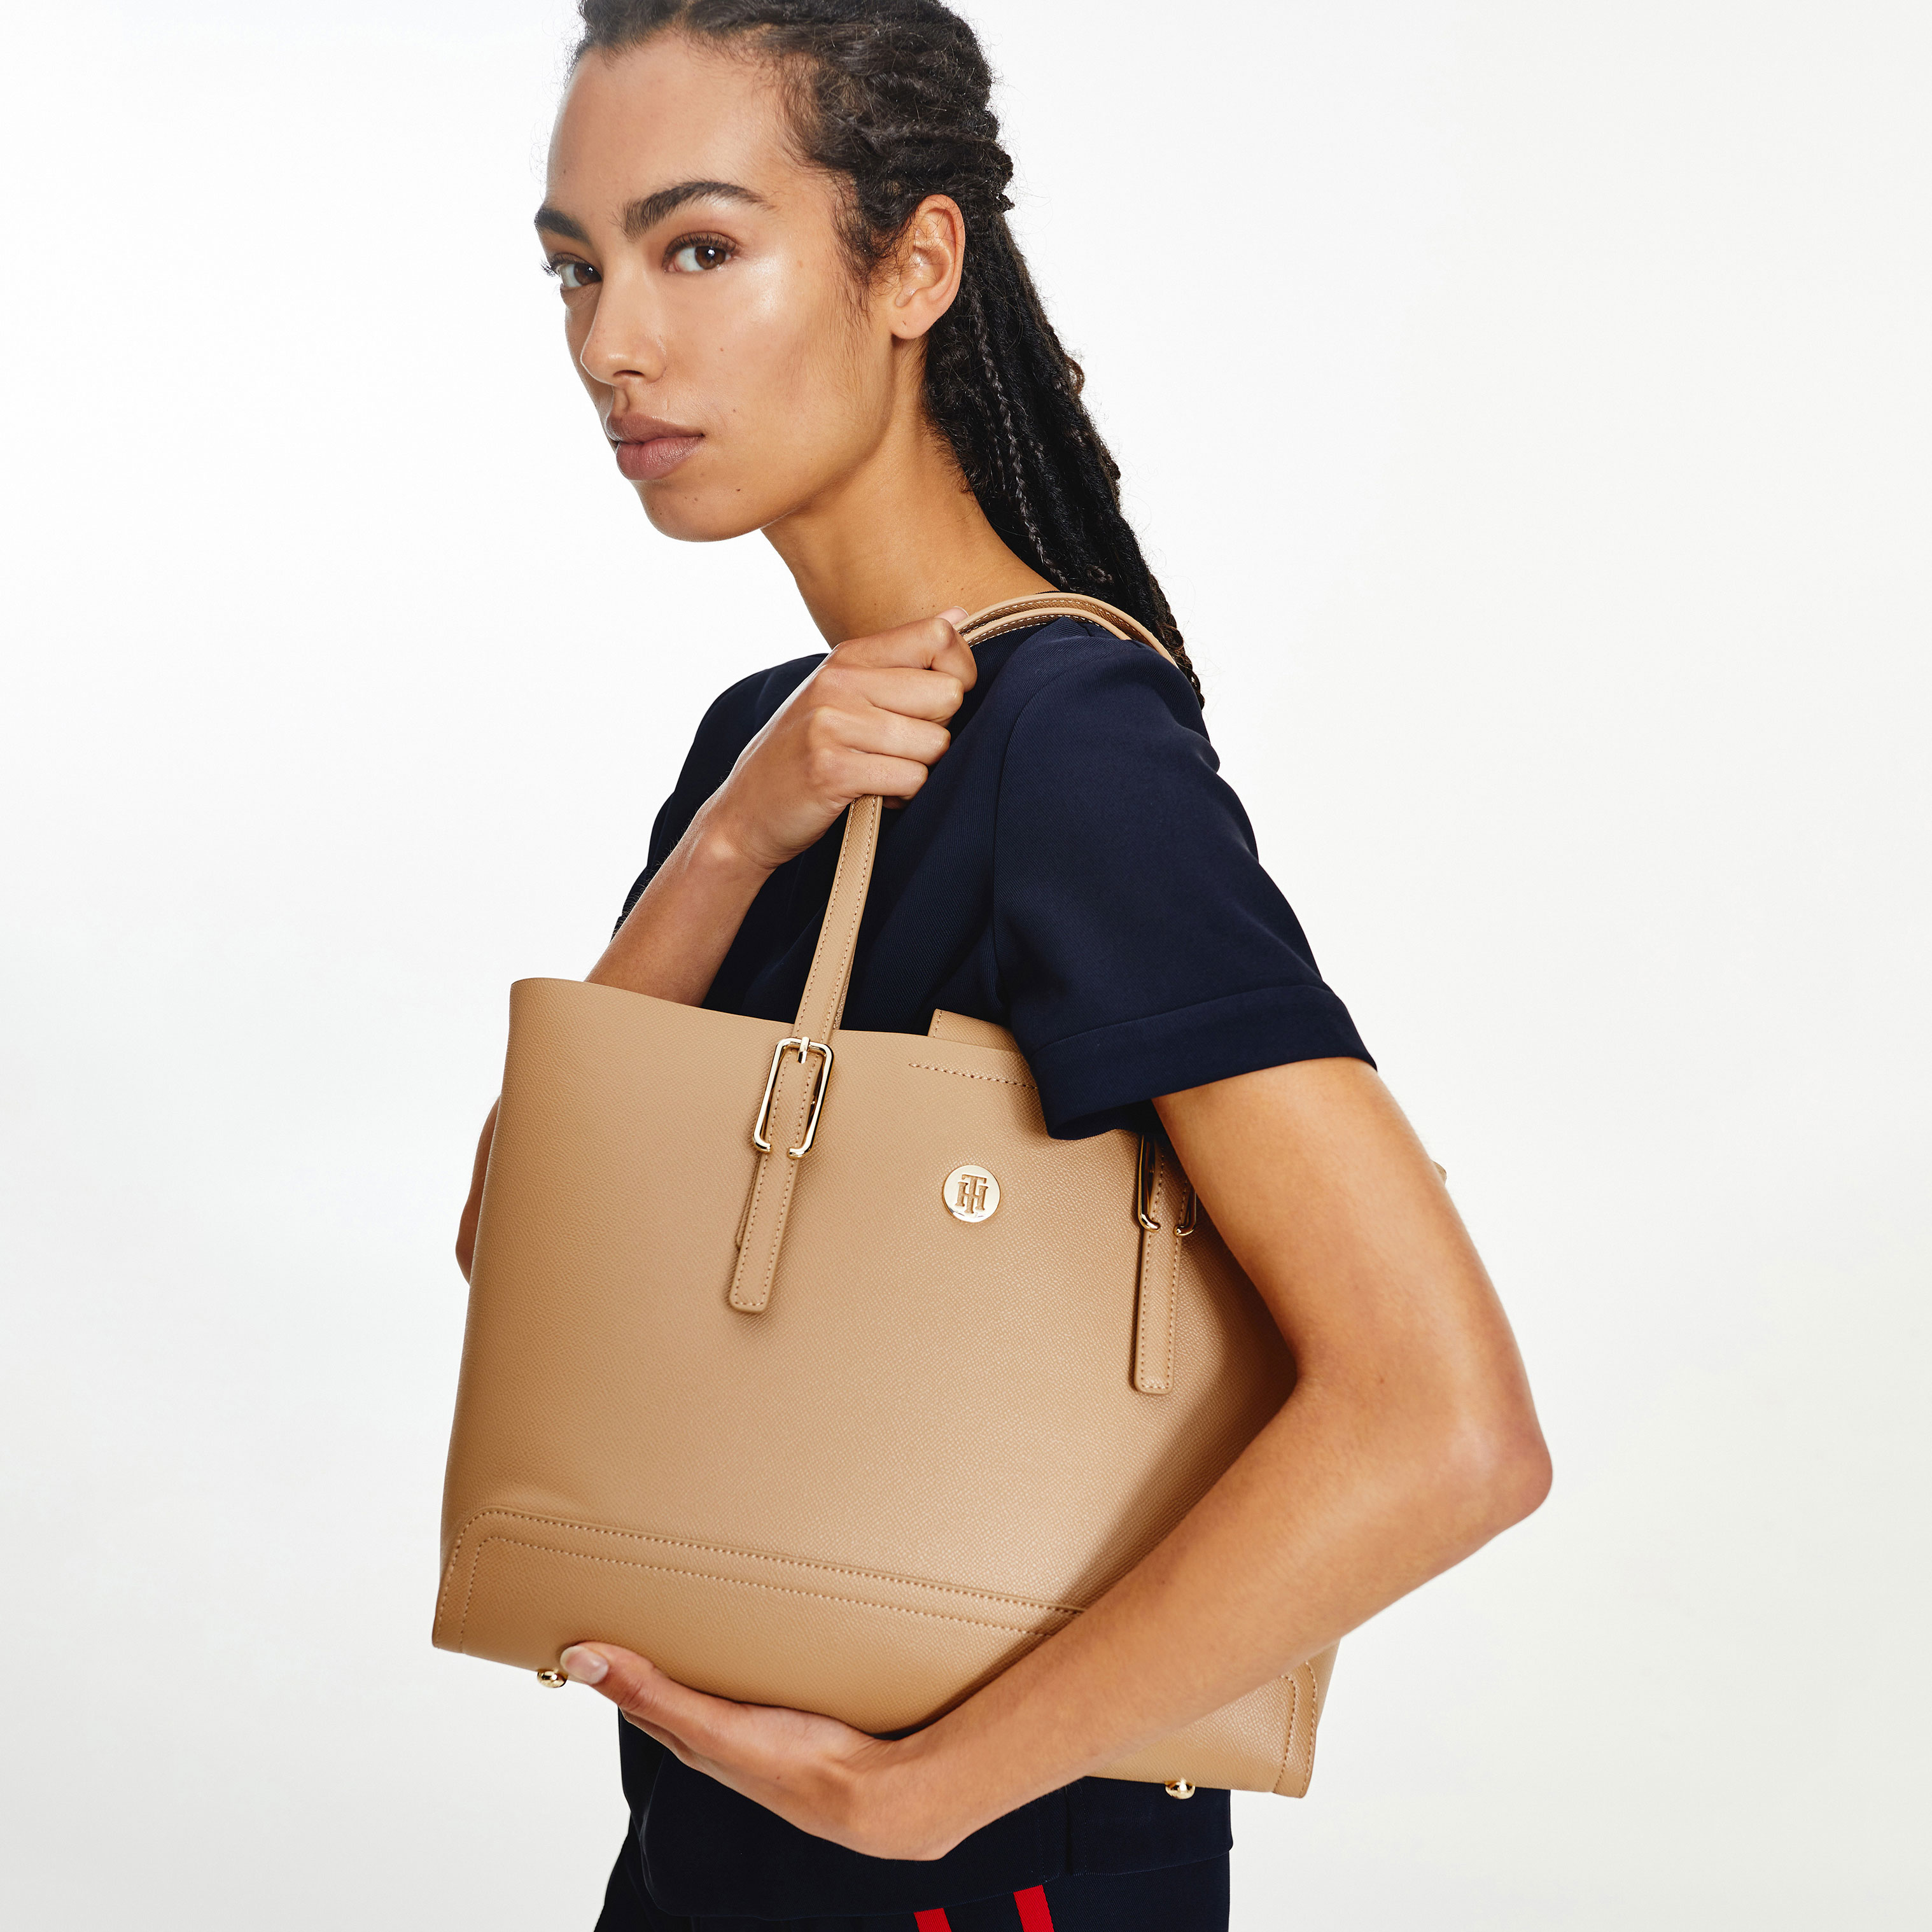 TOMMY HILFIGER Marroquinería Bolso Honey Med Tote AW0AW10492-GUV